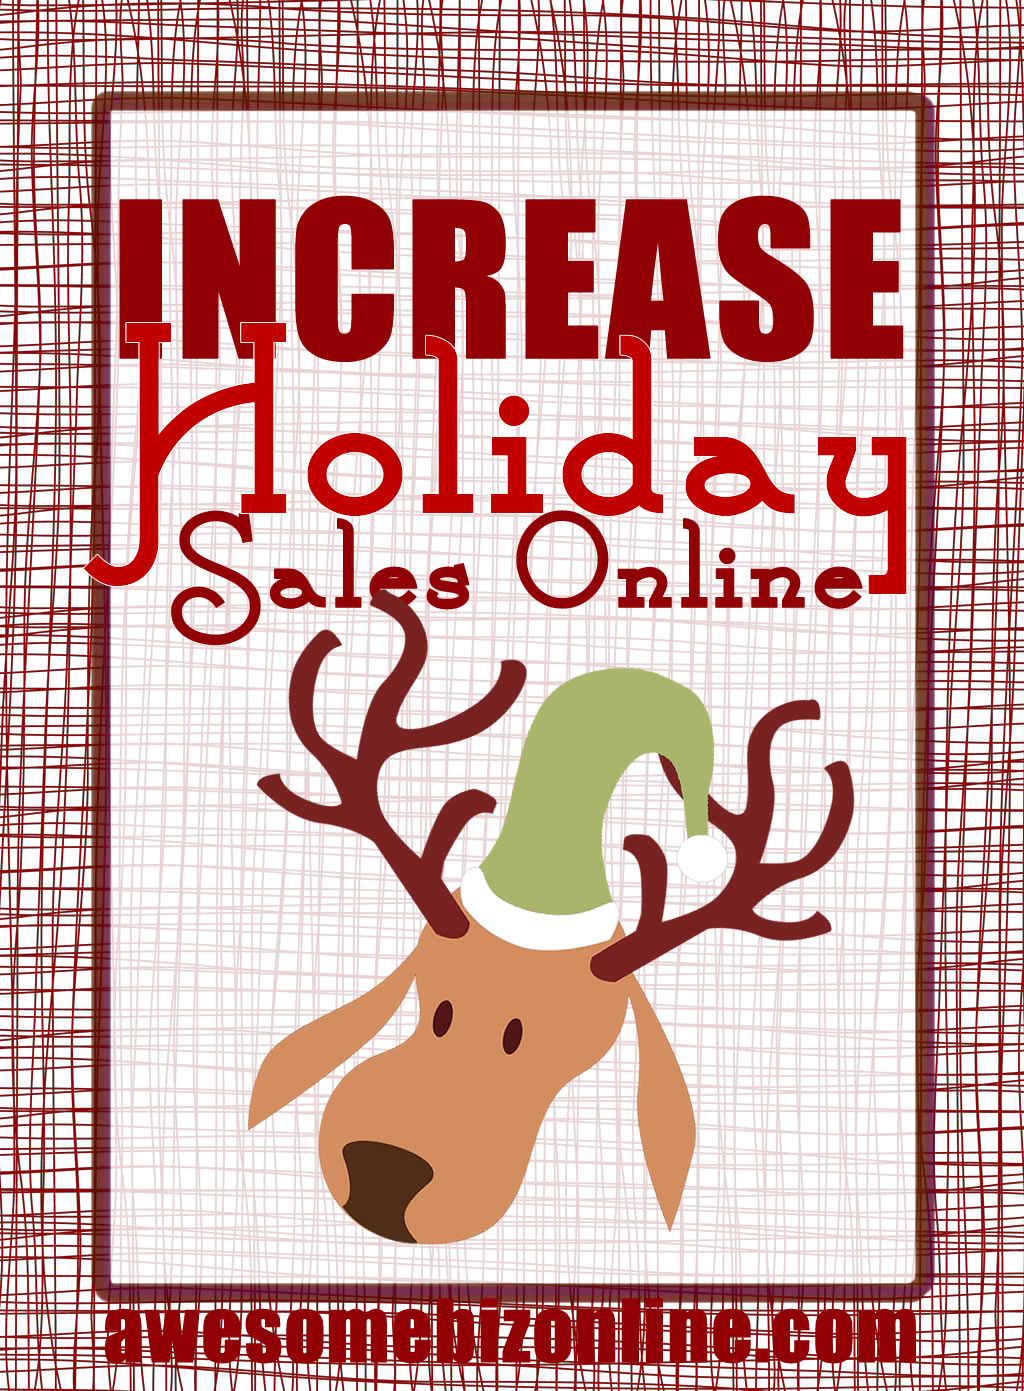 45 Ways To Increase Holiday Sales (free downloadable PDF)